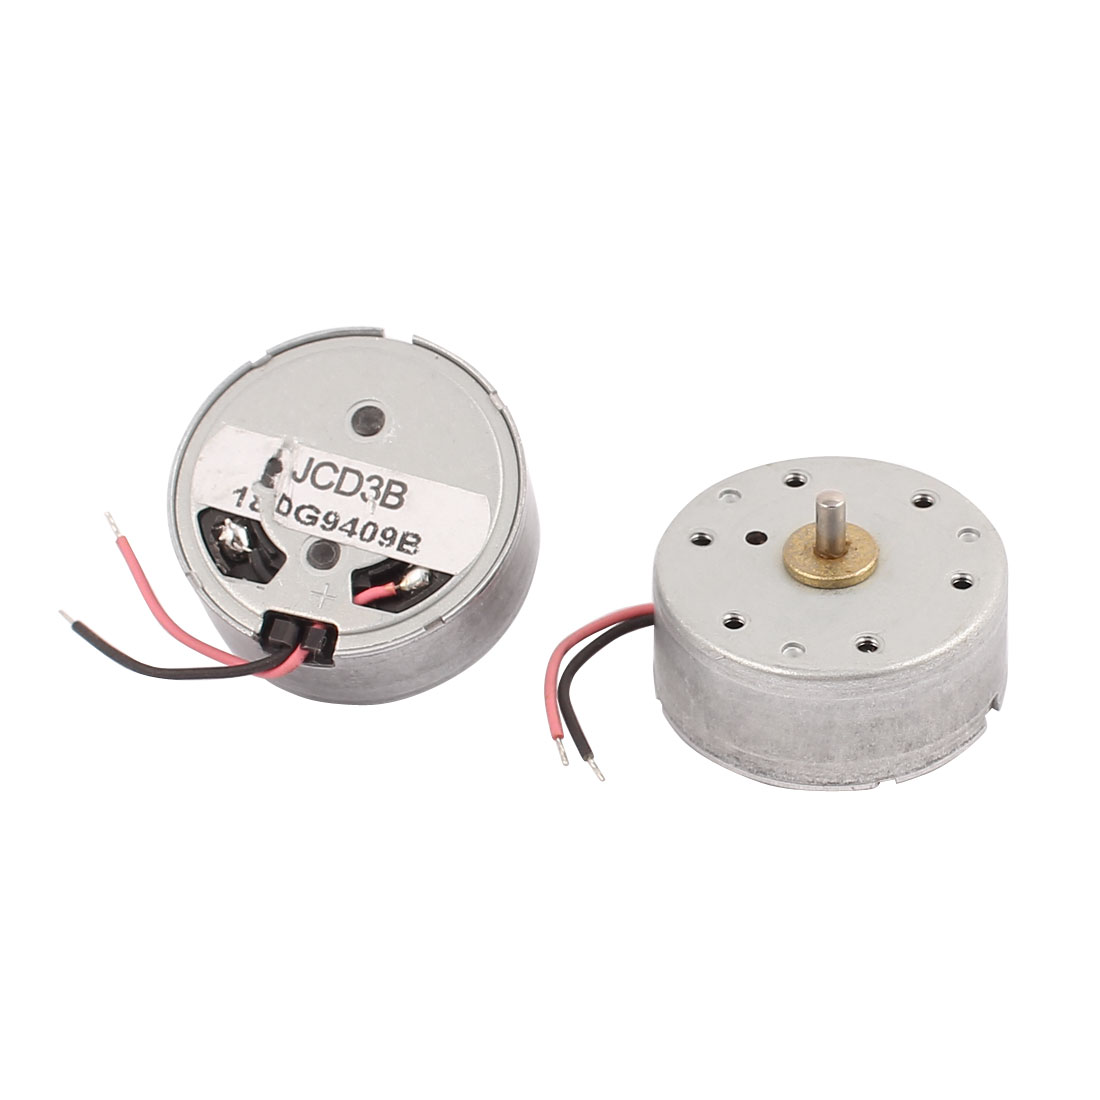 2Pcs DC 3-5V 7500RPM Large Torque Cylindrical Micro Motor for Electric Massage